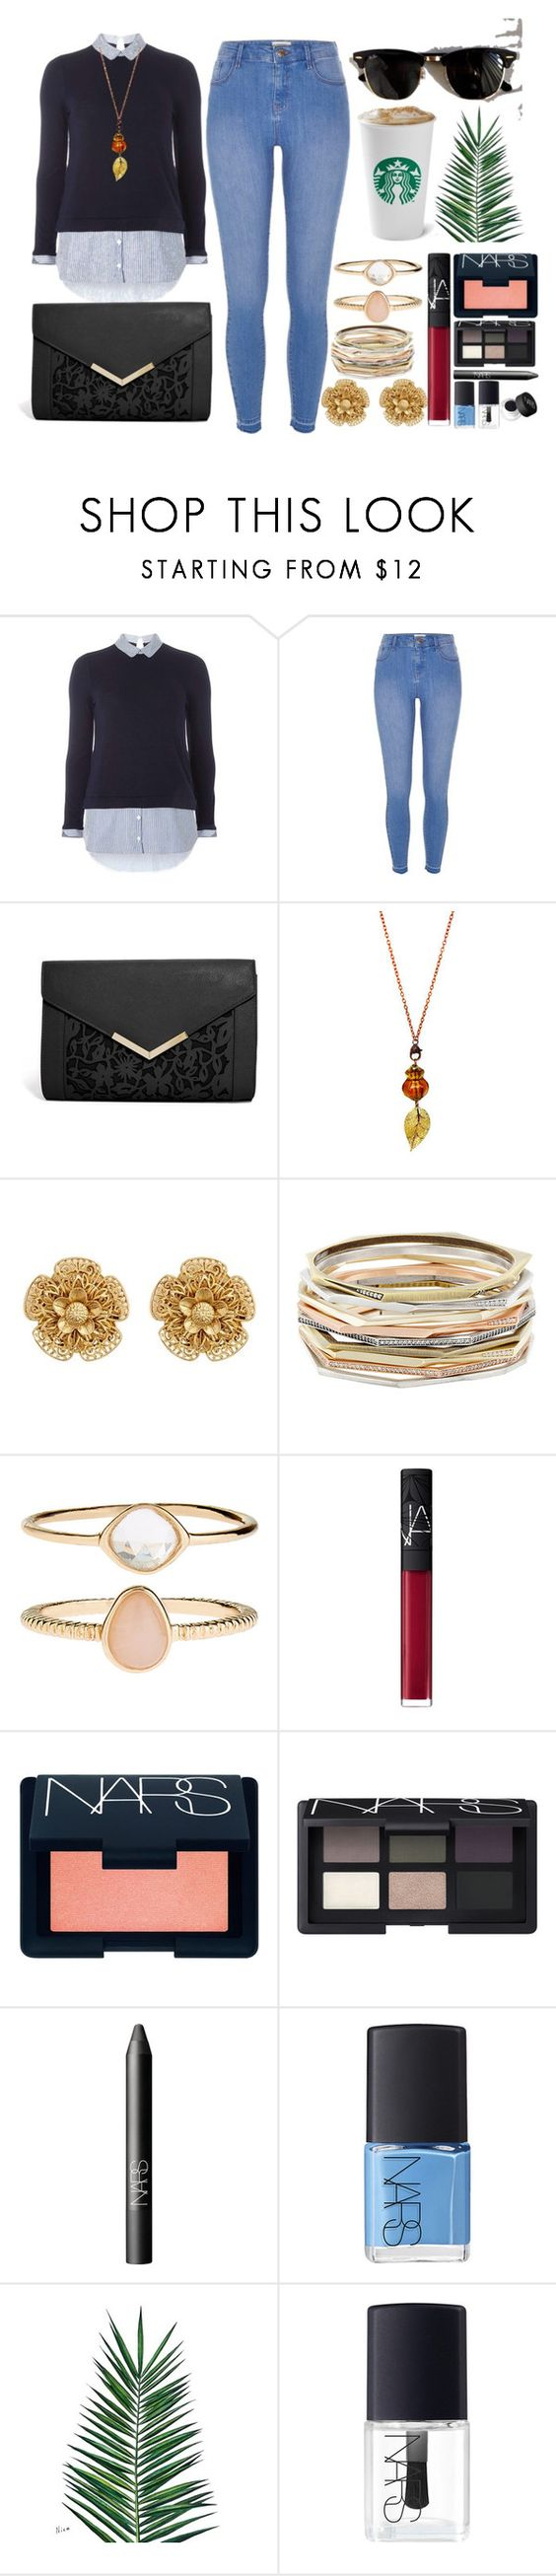 """Untitled #764"" by overdue22 ❤ liked on Polyvore featuring Dorothy Perkins, River Island, ASOS, Miriam Haskell, Kendra Scott, Accessorize, NARS Cosmetics, Ray-Ban, Nika and bup"